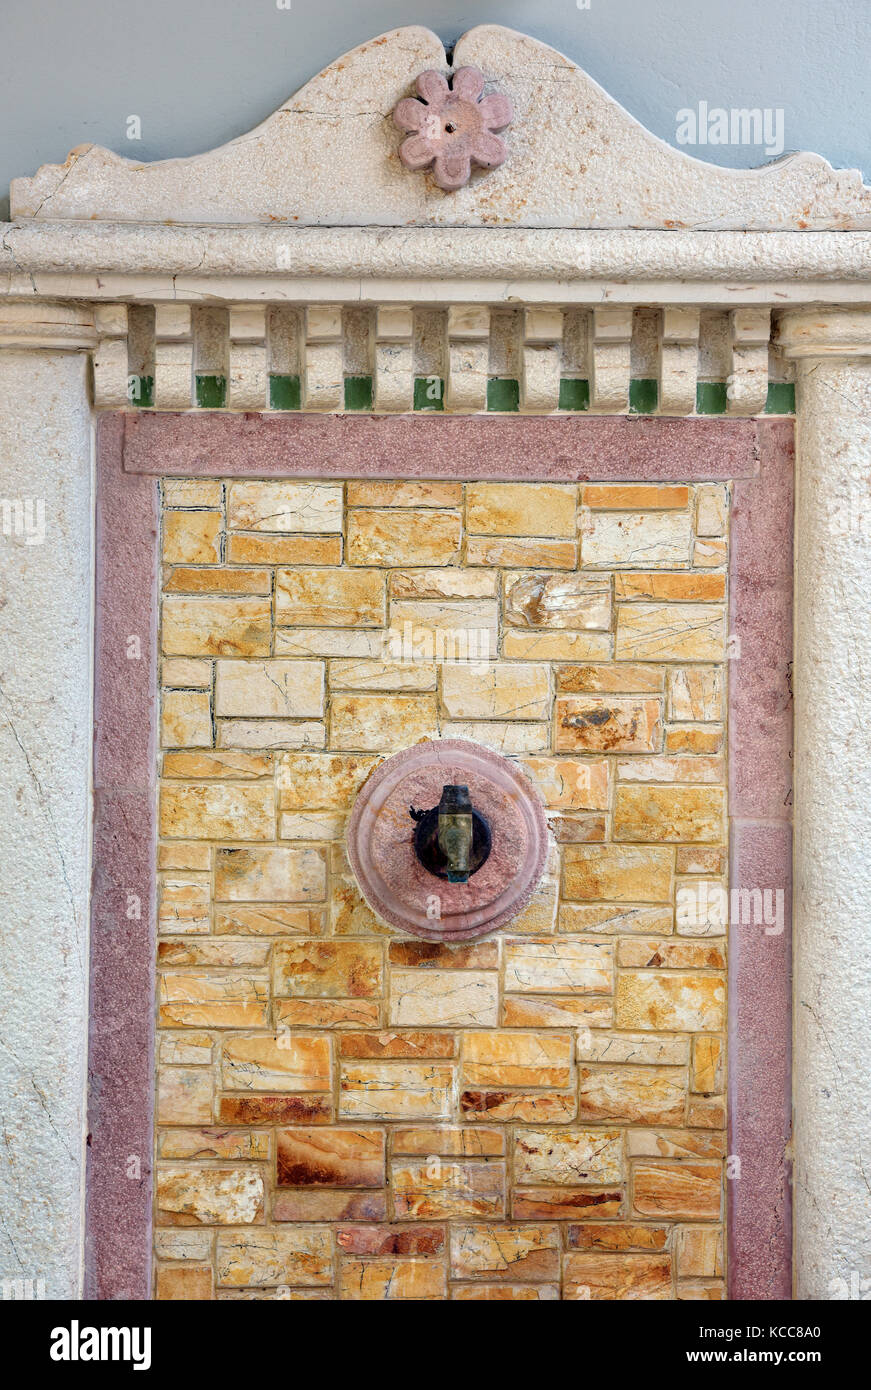 a water fountain or font for drinking set into an ornate surround on a stone wall with a broken pediment above. - Stock Image